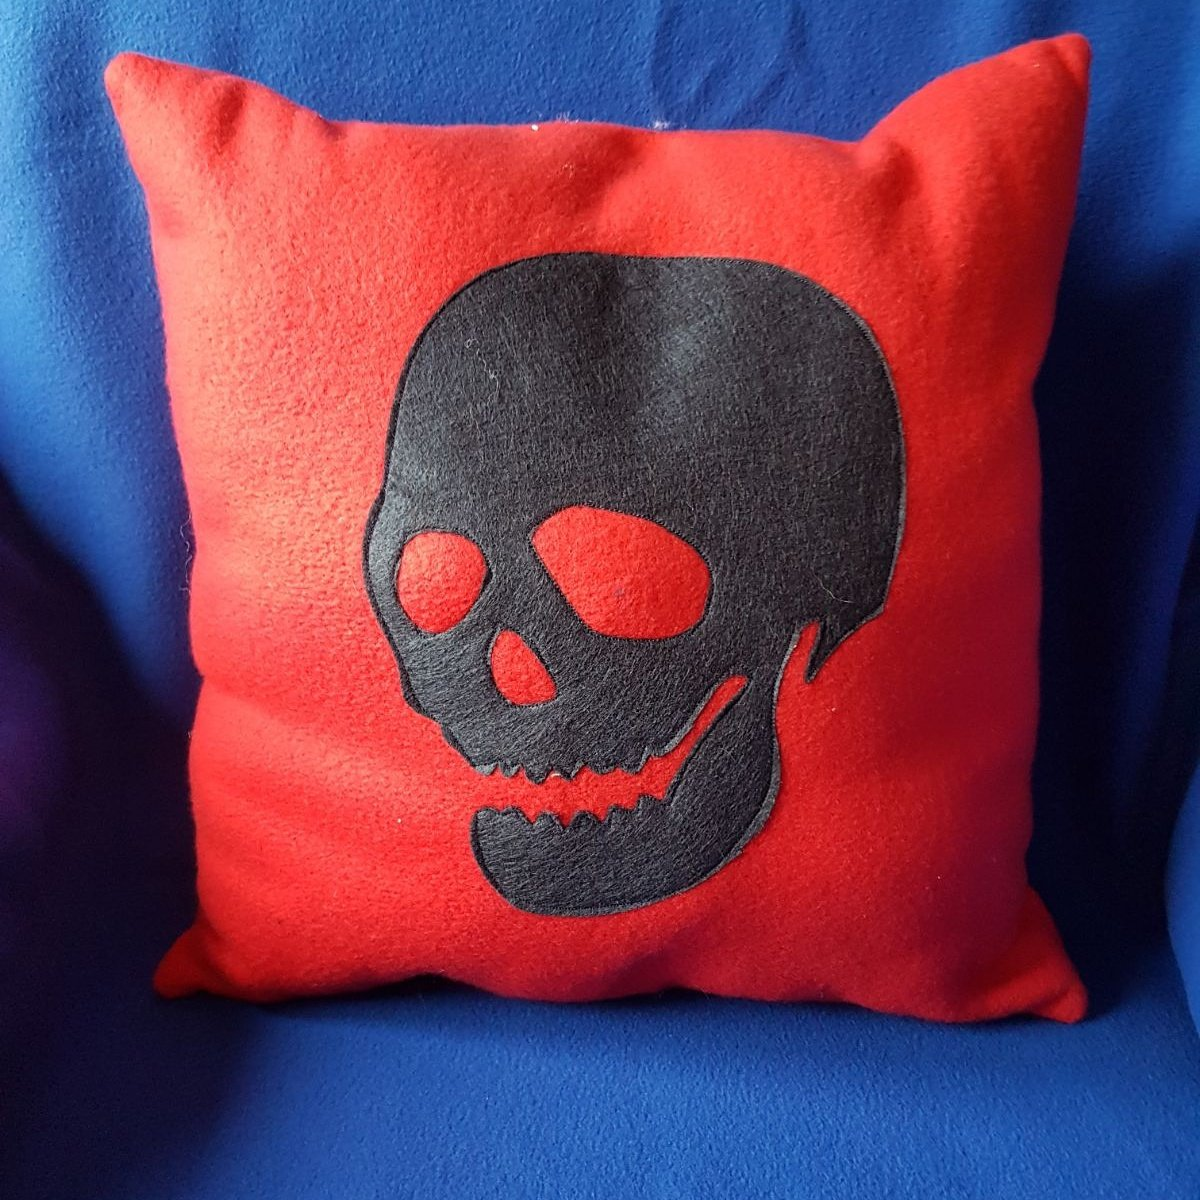 Here&#39;s a funky skull cushion from our new autumn collection.Handmade by us here at Amelia&#39;s Grotto #handmade #skull #autumn #collection <br>http://pic.twitter.com/Lkm0rq00GK